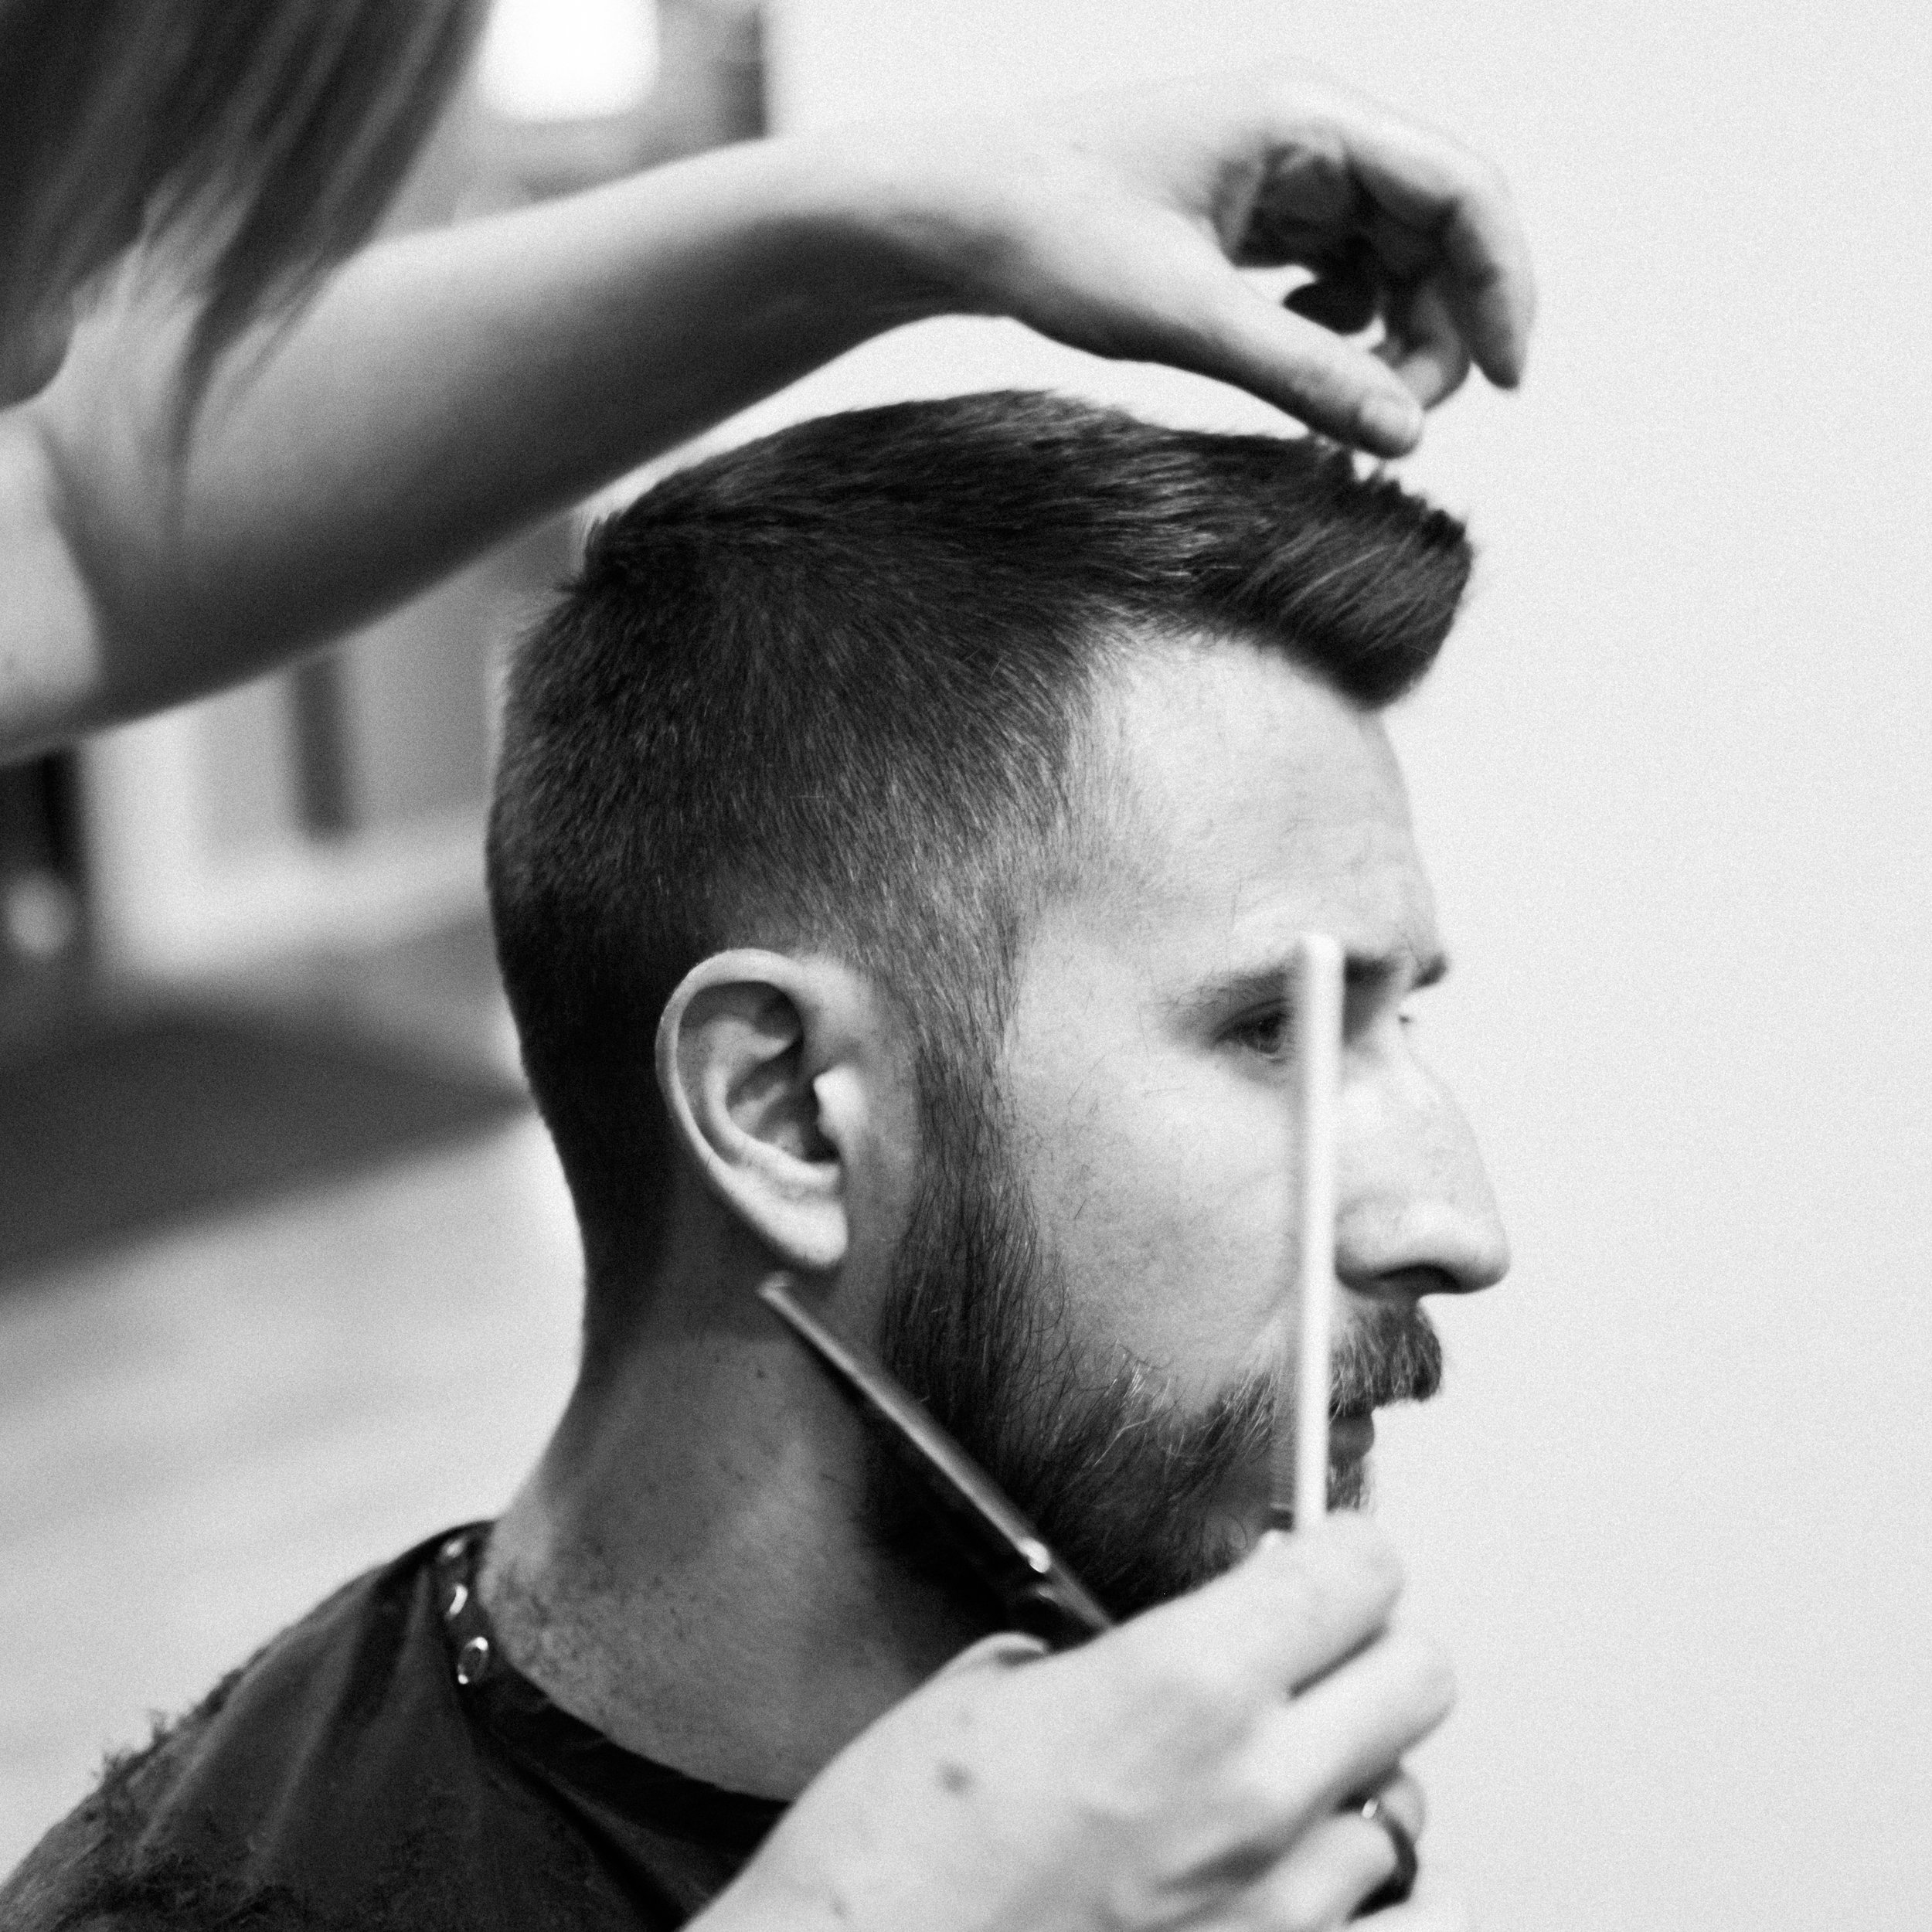 -Cut & Style- - Women's Cut & Style- $60{shampoo, cut and style}Women's Haircut Only- $45{dry cut or shampoo/no style}Men's Haircut- $35{cut, shampoo and style}Children's Cut- $35{ages 0-11}{no shampoo}Kid's Cut- $45{ages 12-16}{shampoo, cut and style}Donation Cuts- Free{free cut with a 8-12